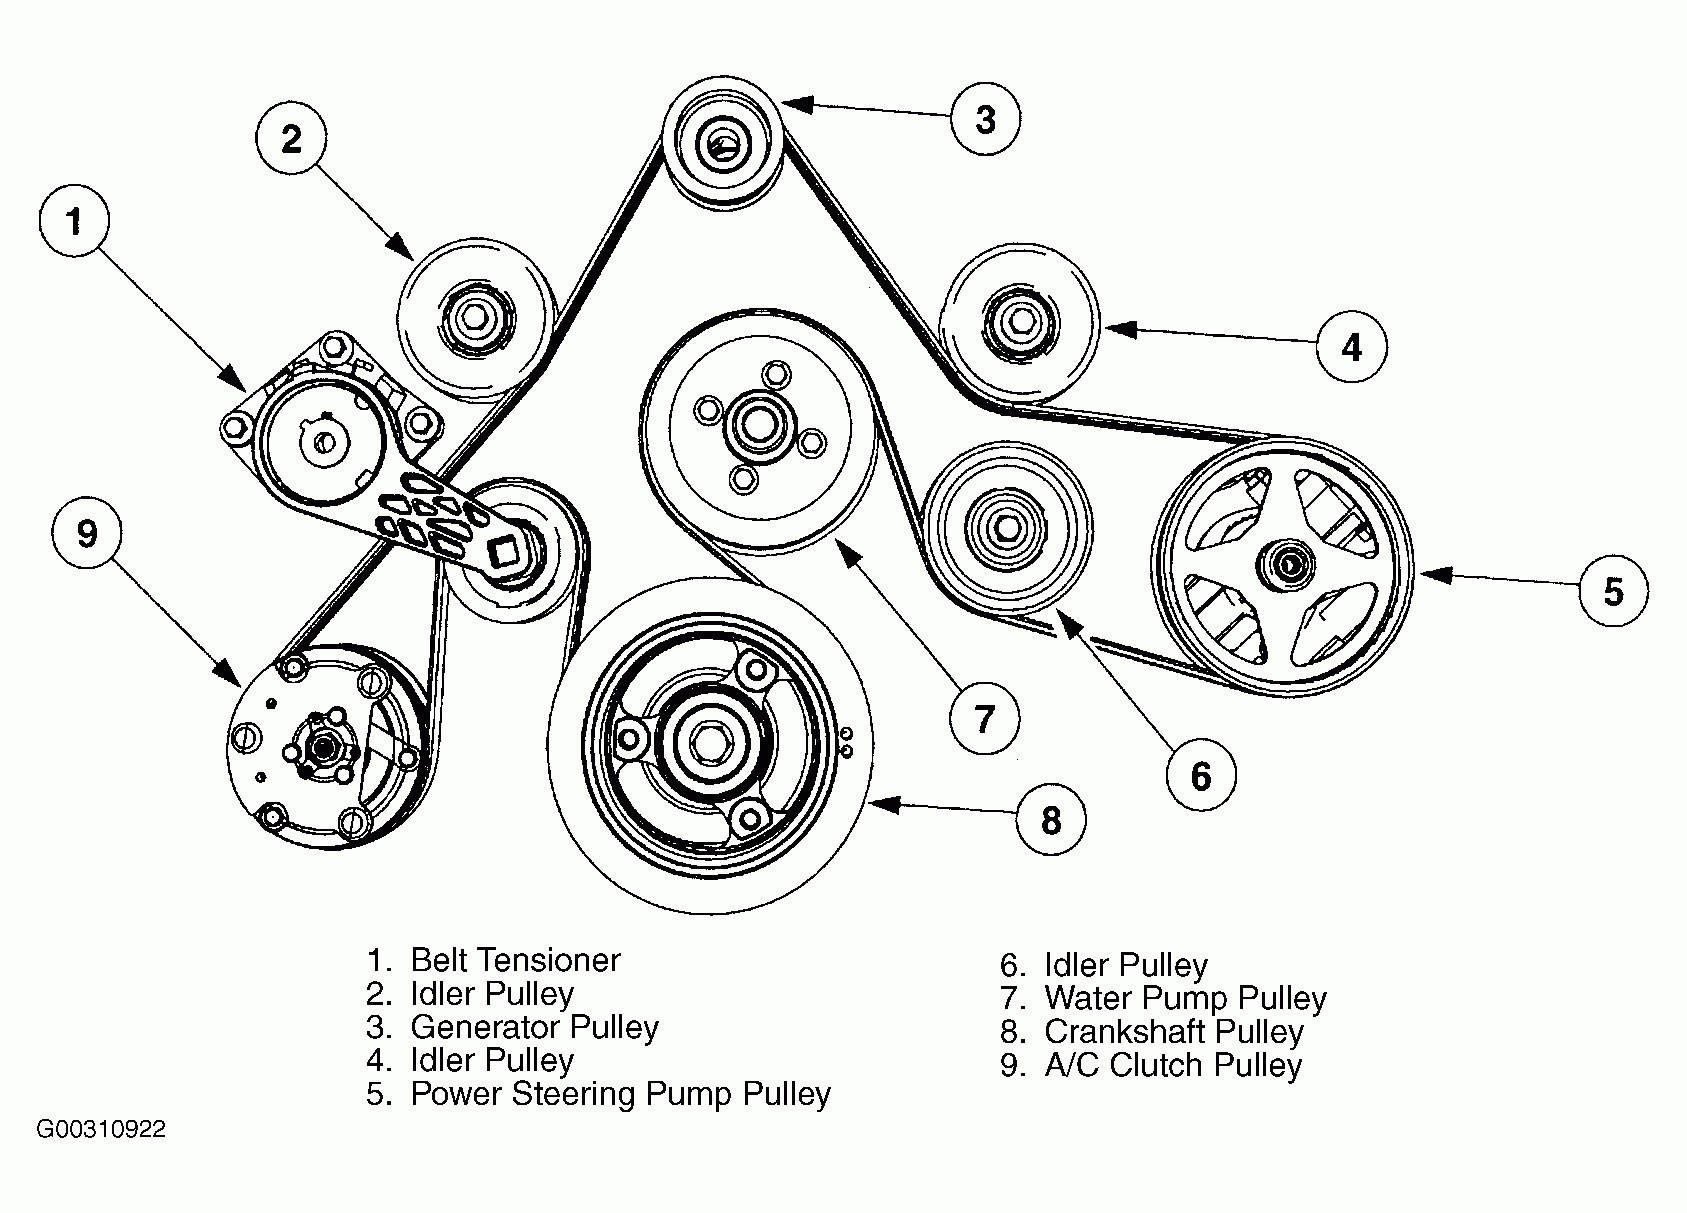 2000 ford Taurus 3 0 Engine Diagram ford 1 9 Engine Diagram Another Blog About Wiring Diagram • Of 2000 ford Taurus 3 0 Engine Diagram